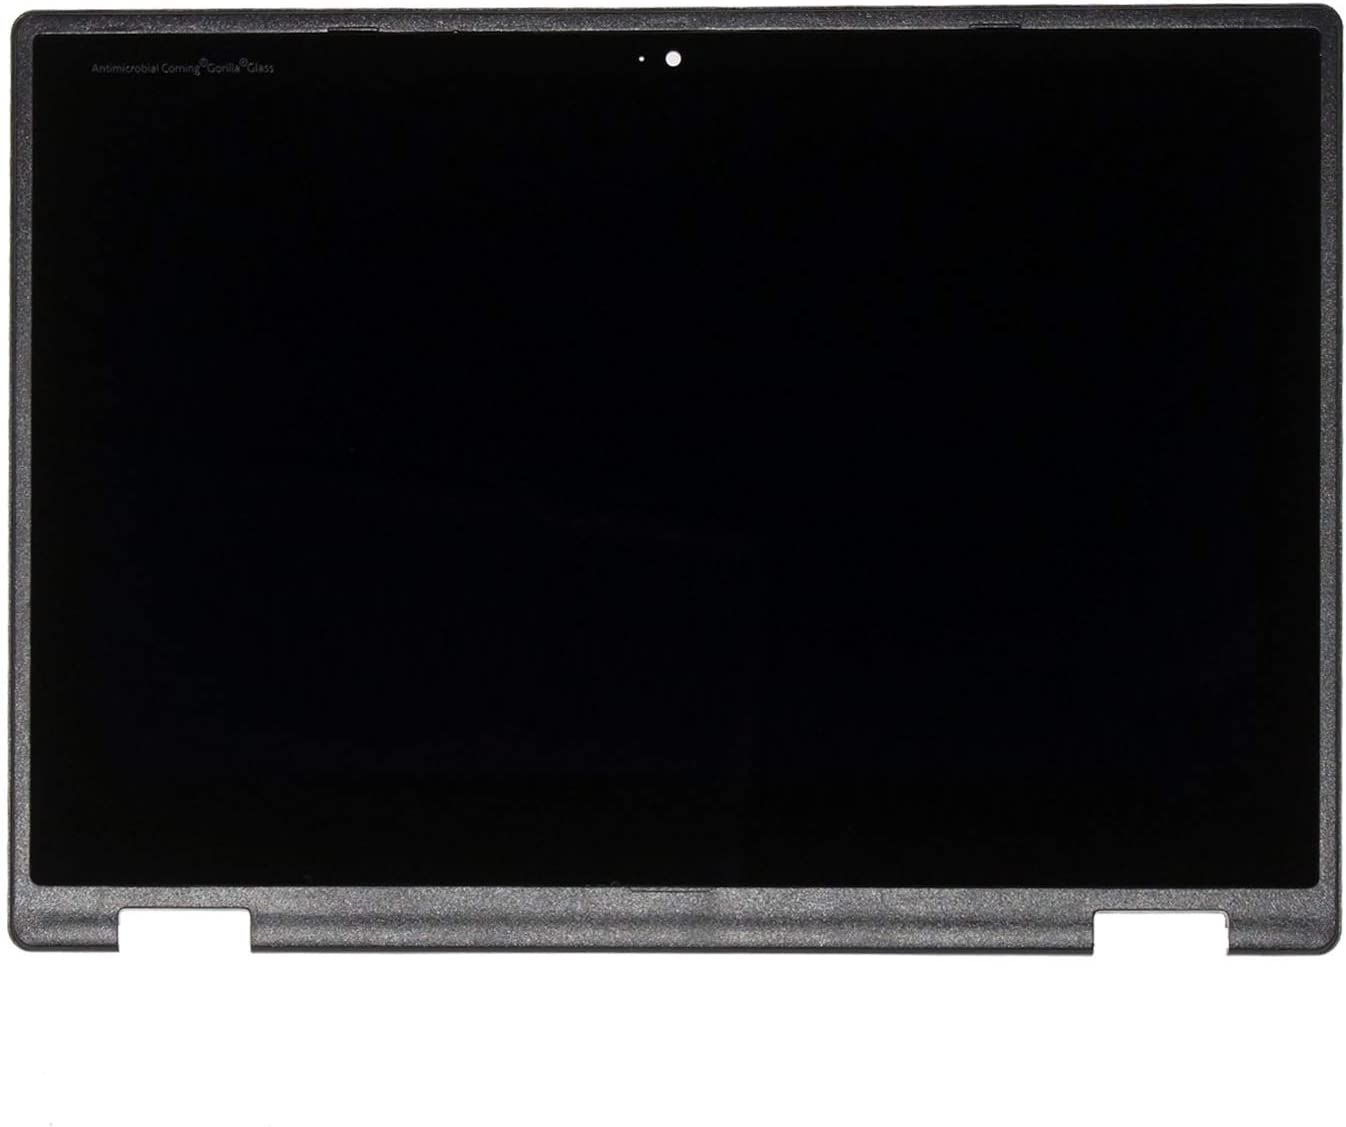 Replacement 11.6'' LCD Touch Screen Assembly for Acer Spin 11 R752T Chromebook B116XAB01.4 1366x768